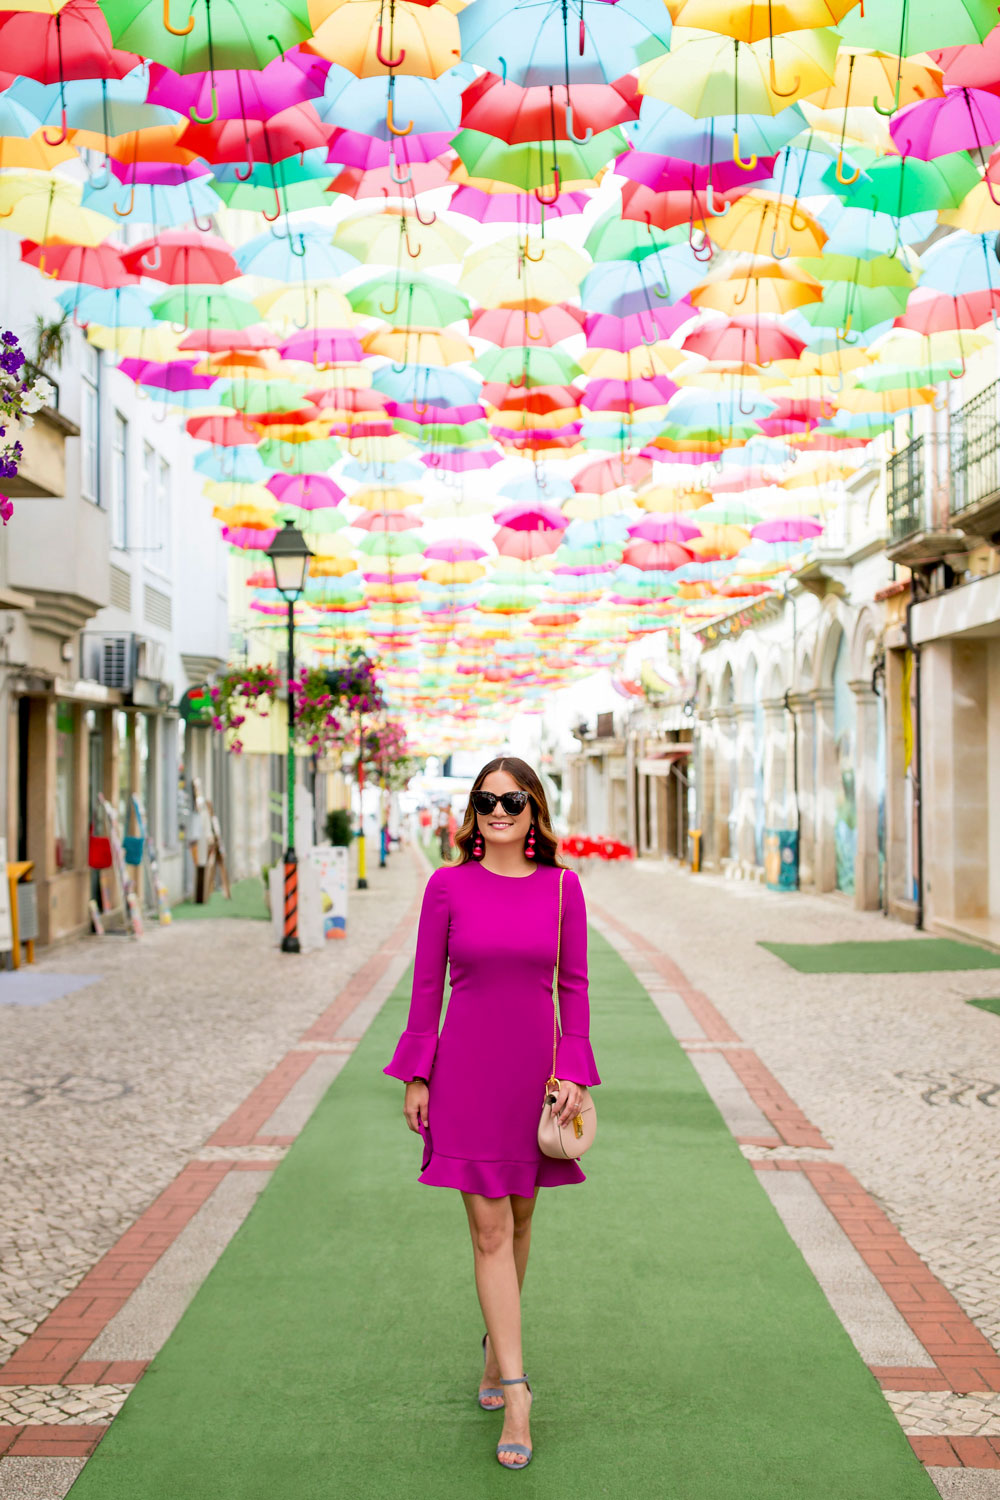 Portugal Umbrella Installation